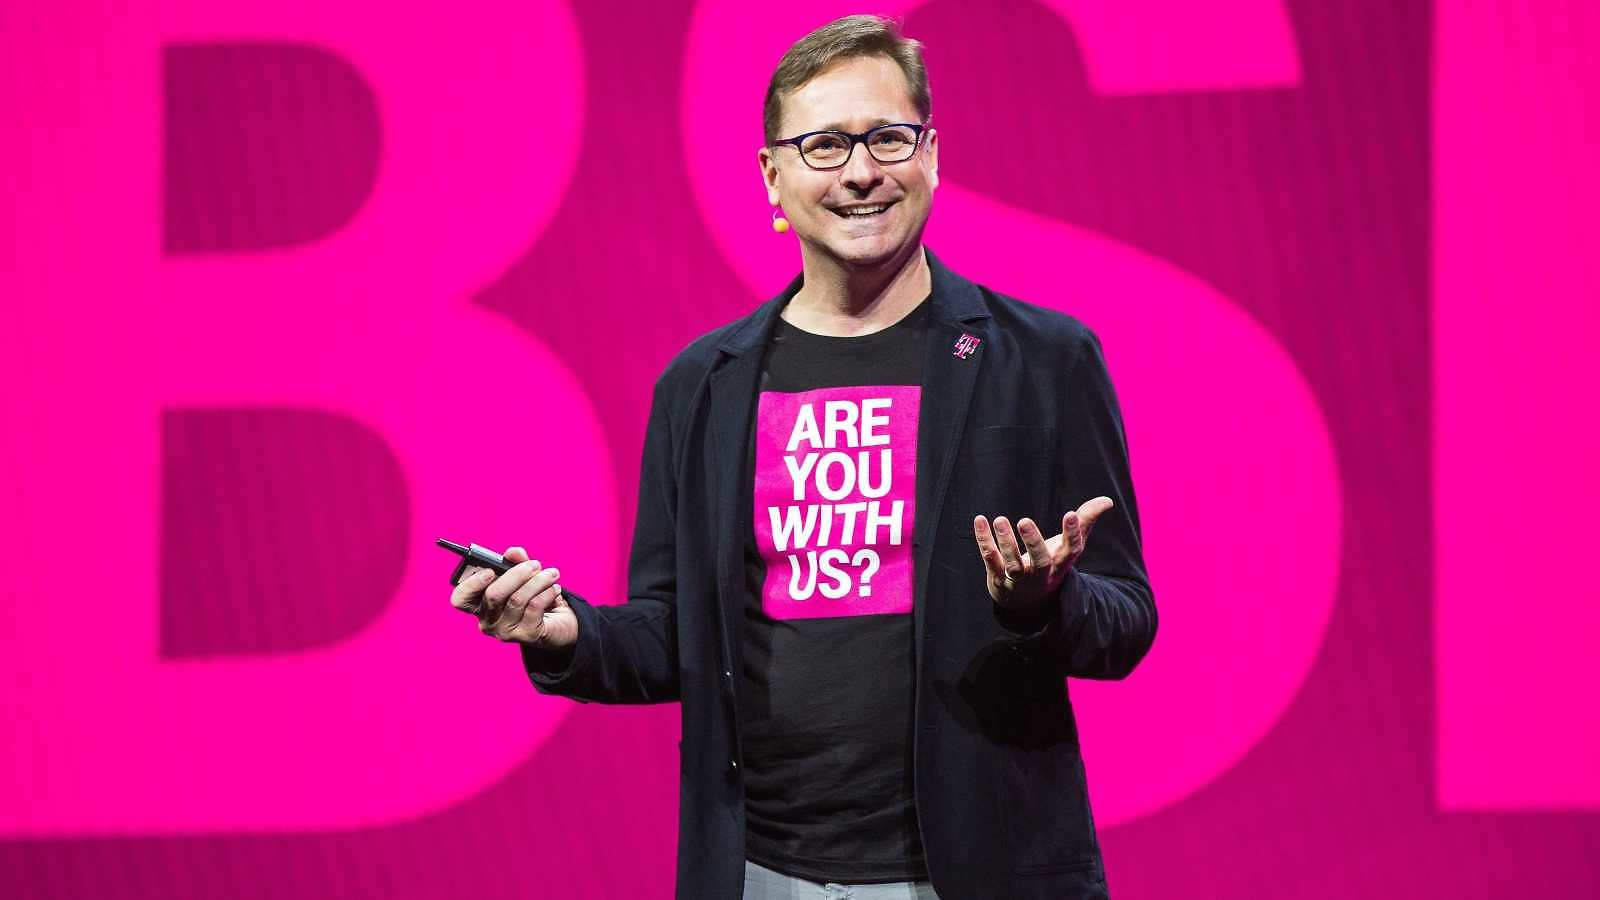 T-Mobile Extends New Lower-priced 5G Unlimited Wireless Smartphone Plan to Those 55 and Older